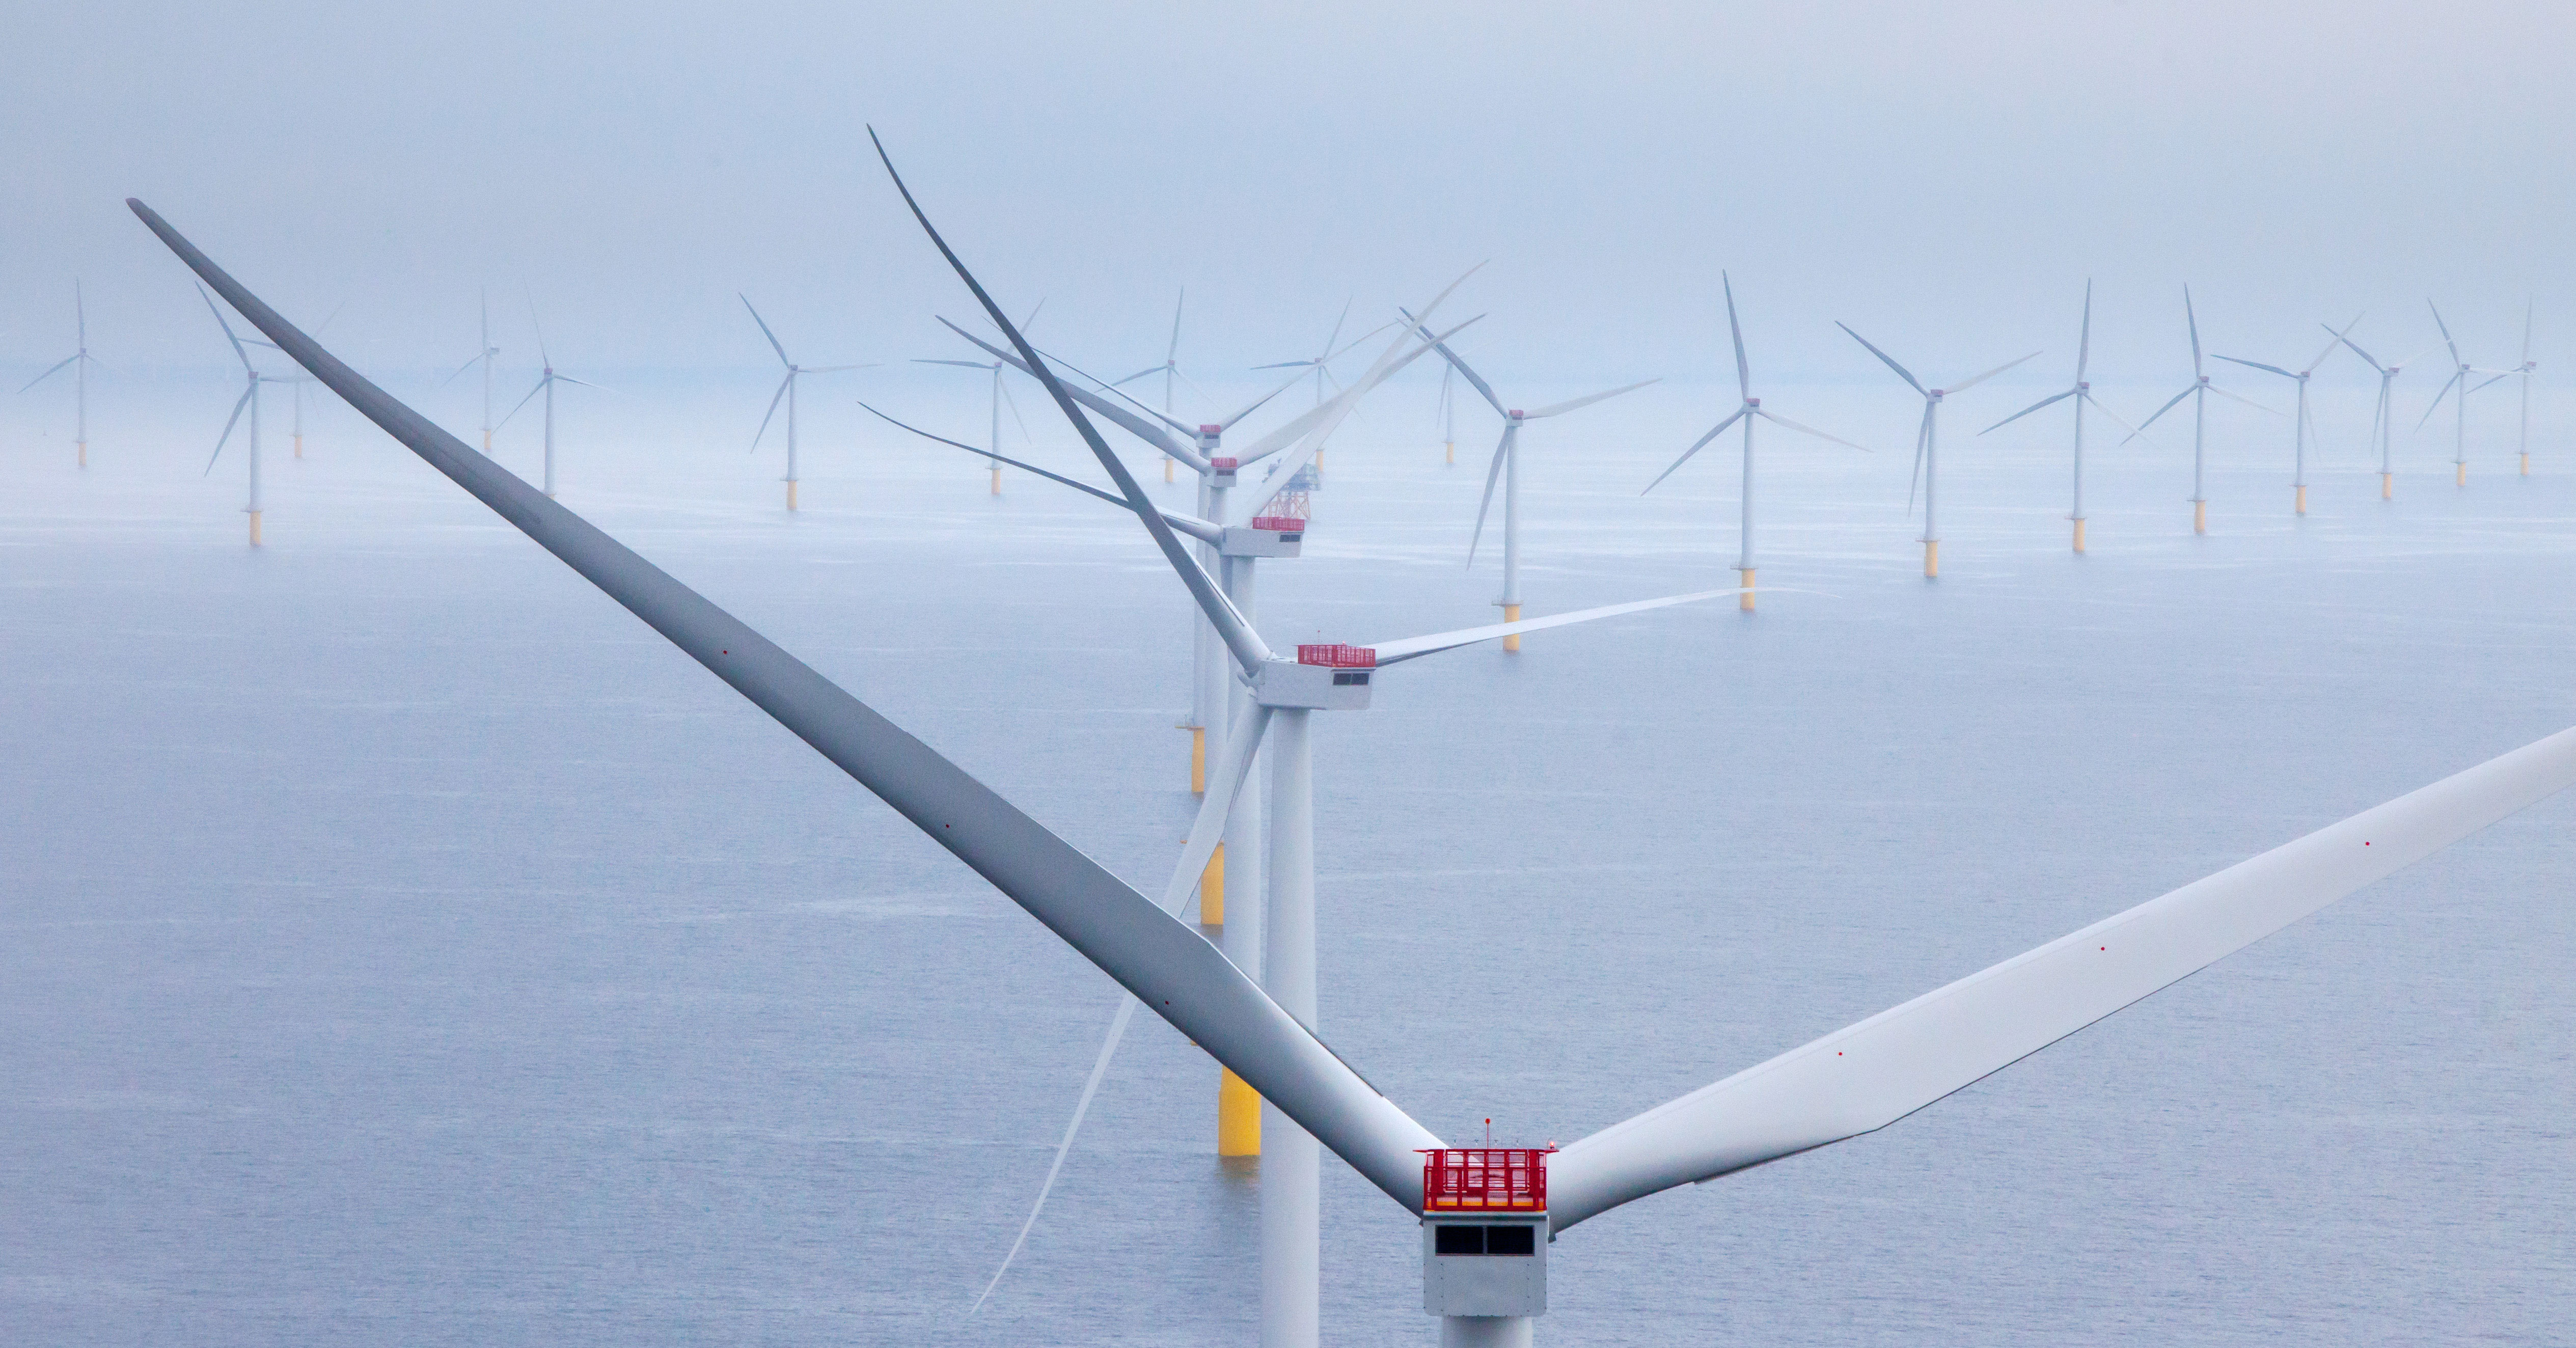 World's largest offshore wind farm opens off northwest England